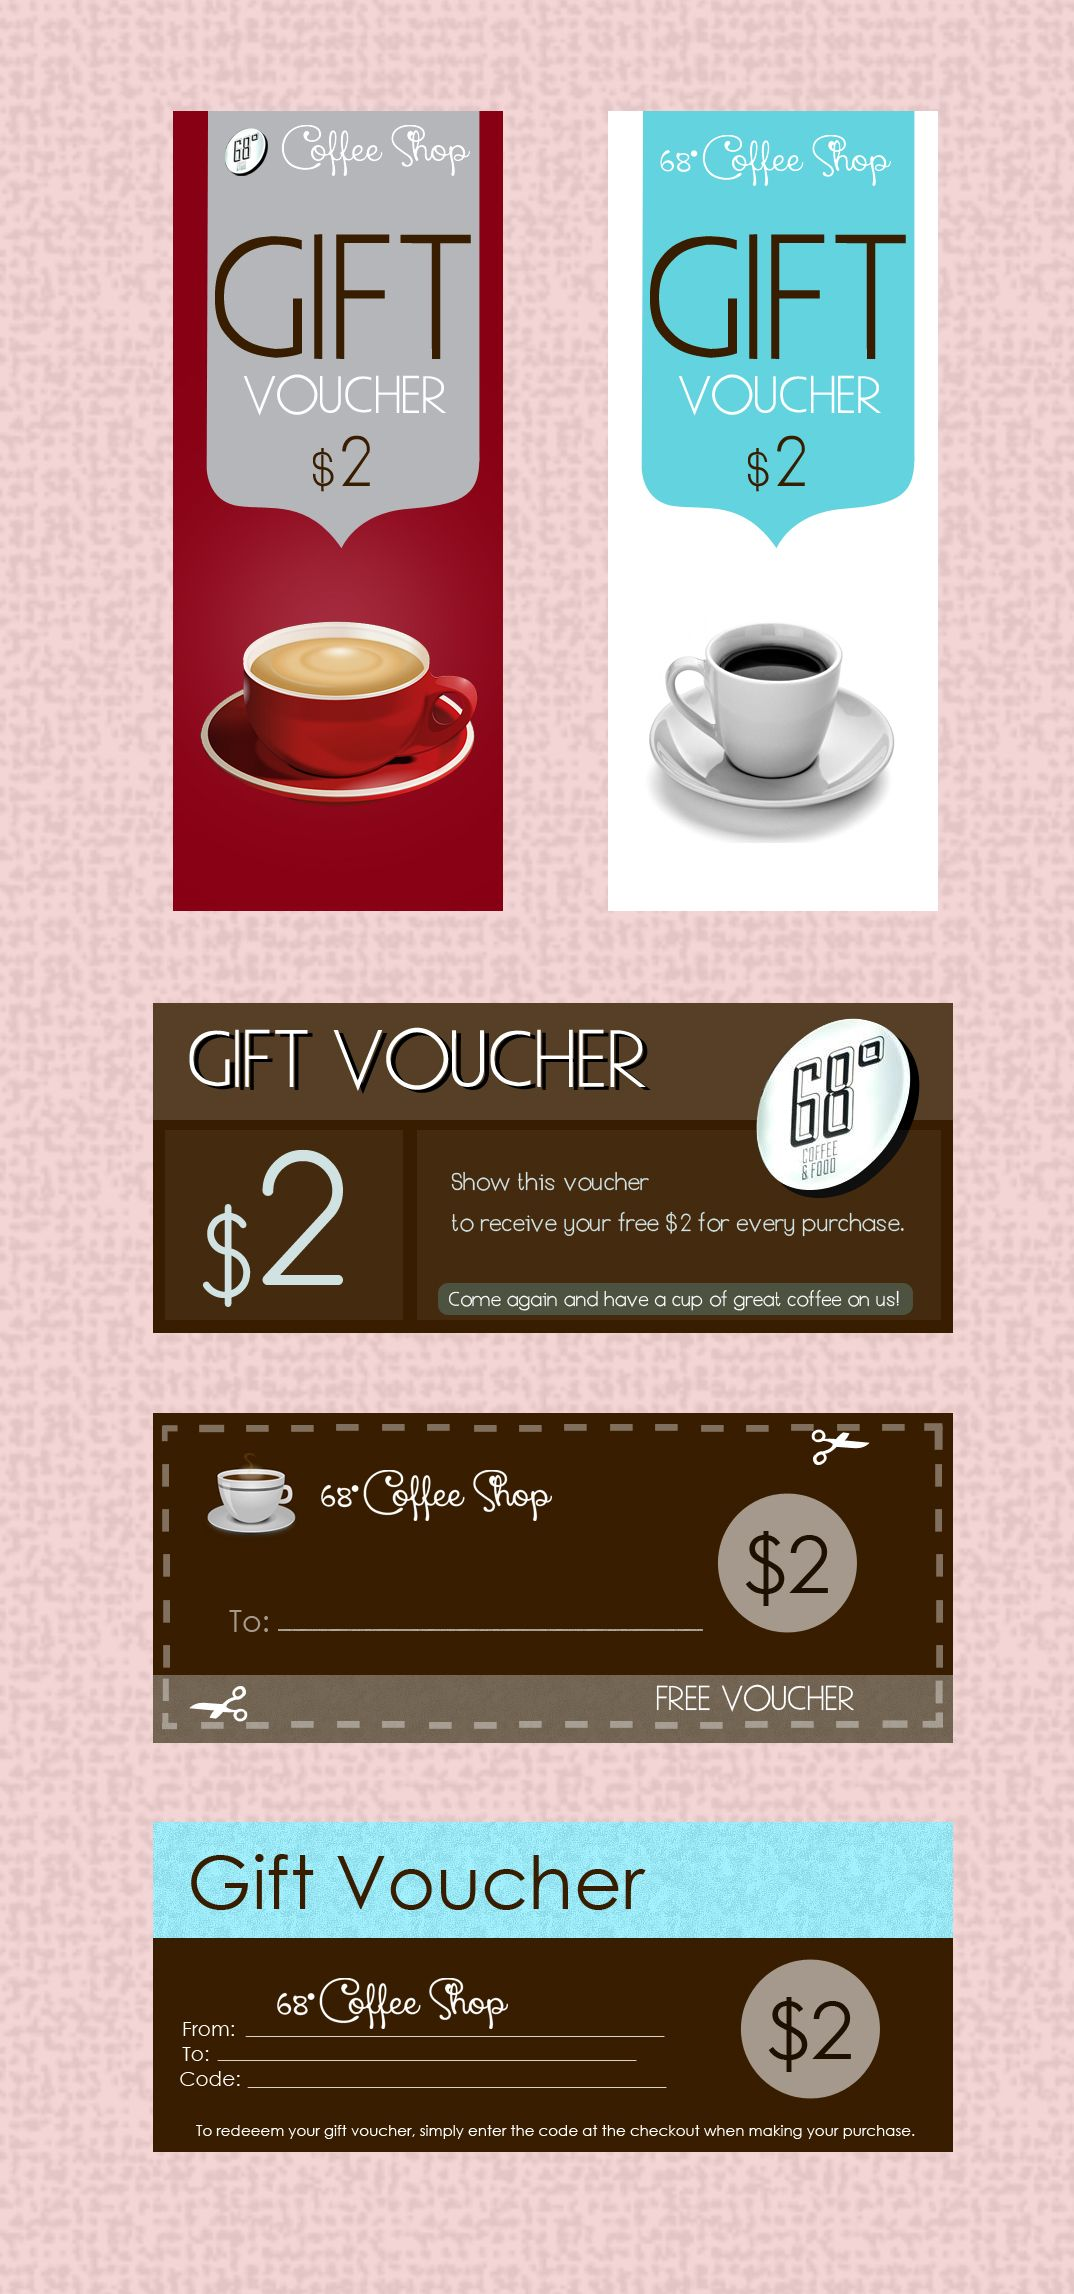 Sample Vouchers for 68Deg Coffee Shop voucher ideas – Sample Vouchers